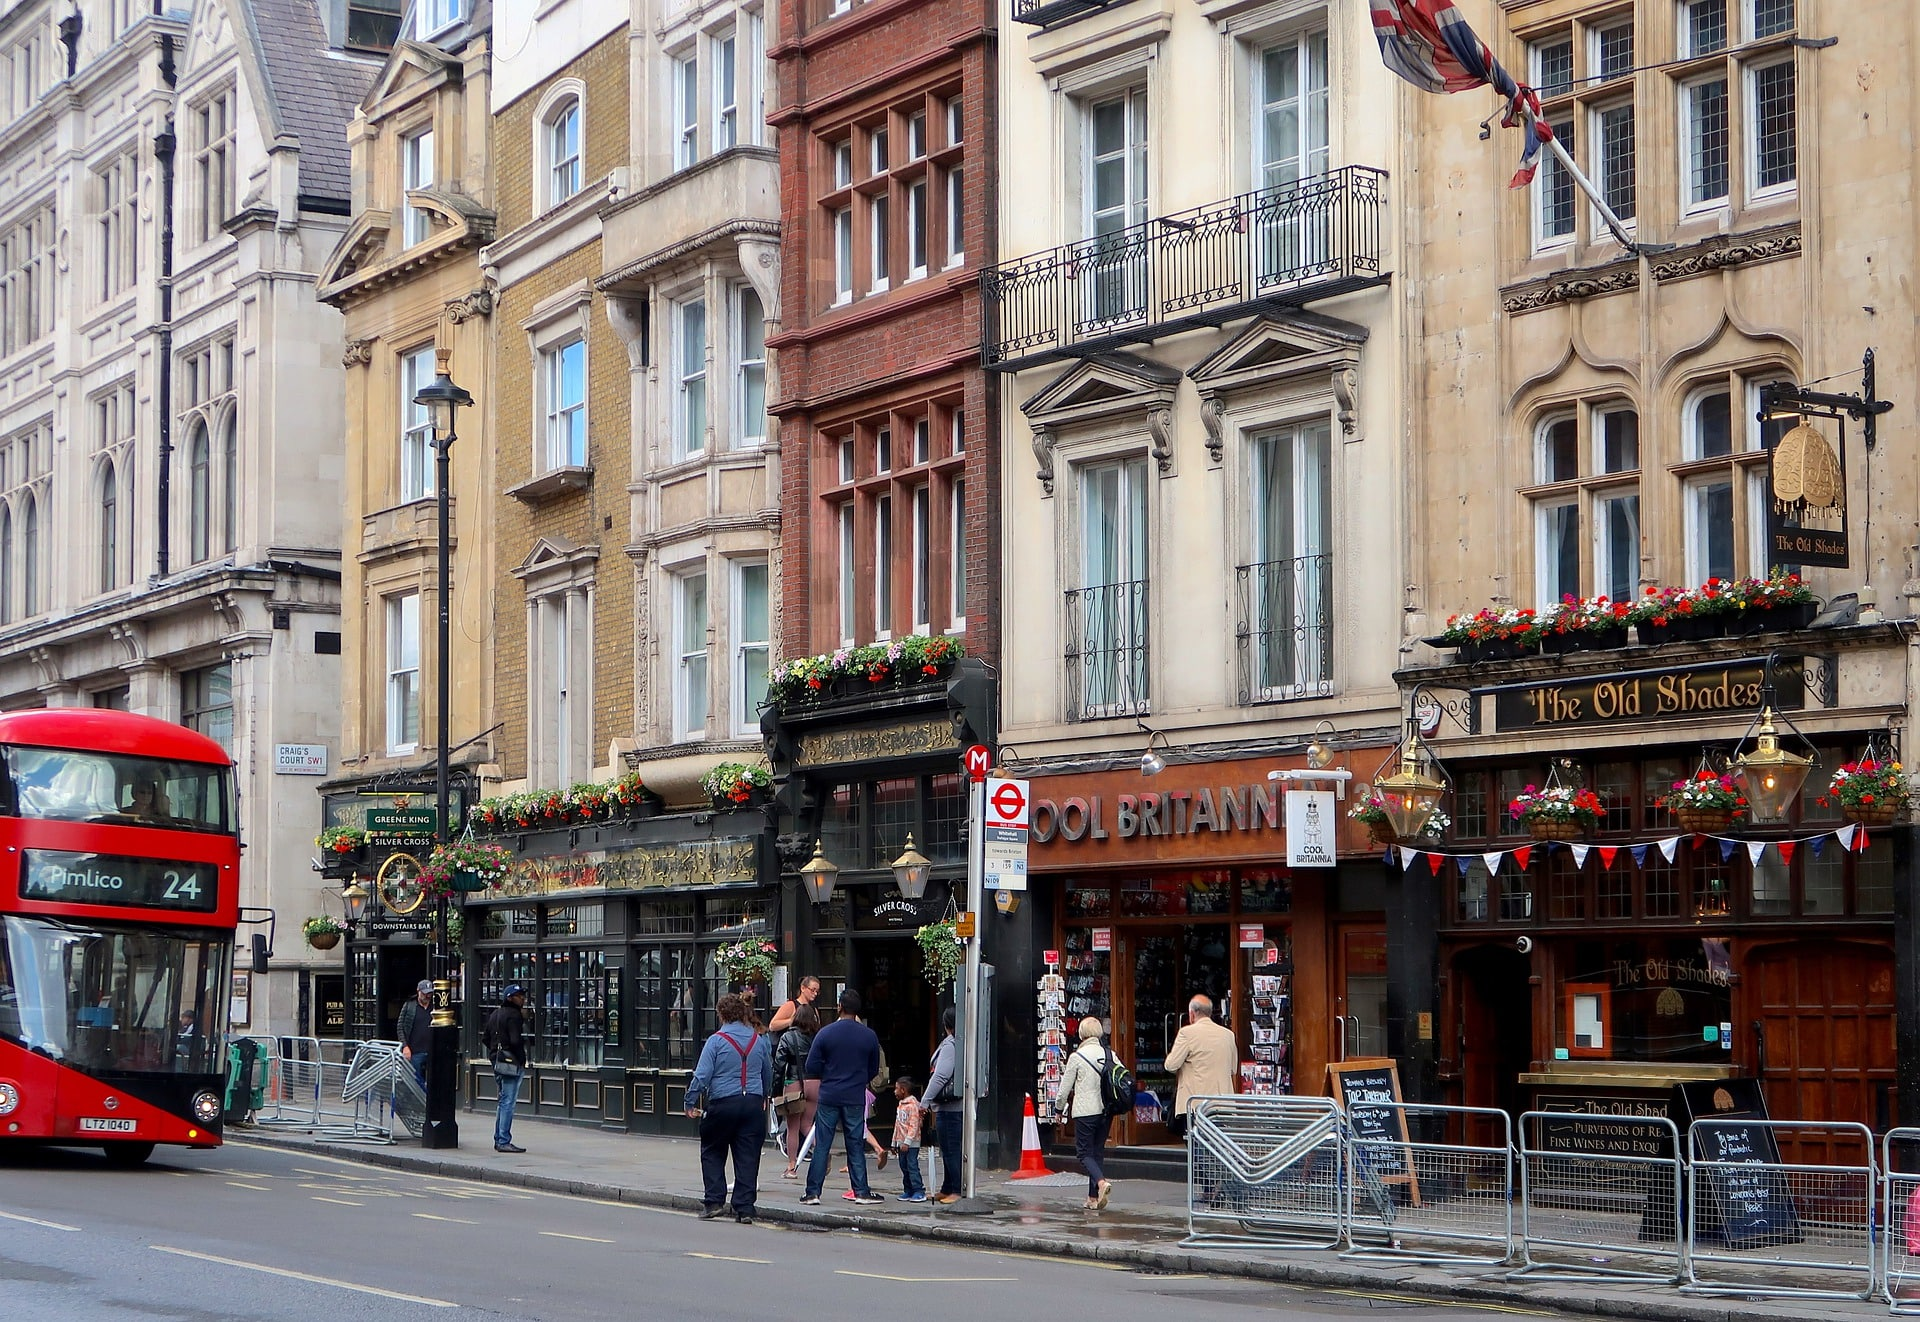 Fun places to visit in London are the city's plethora of pubs